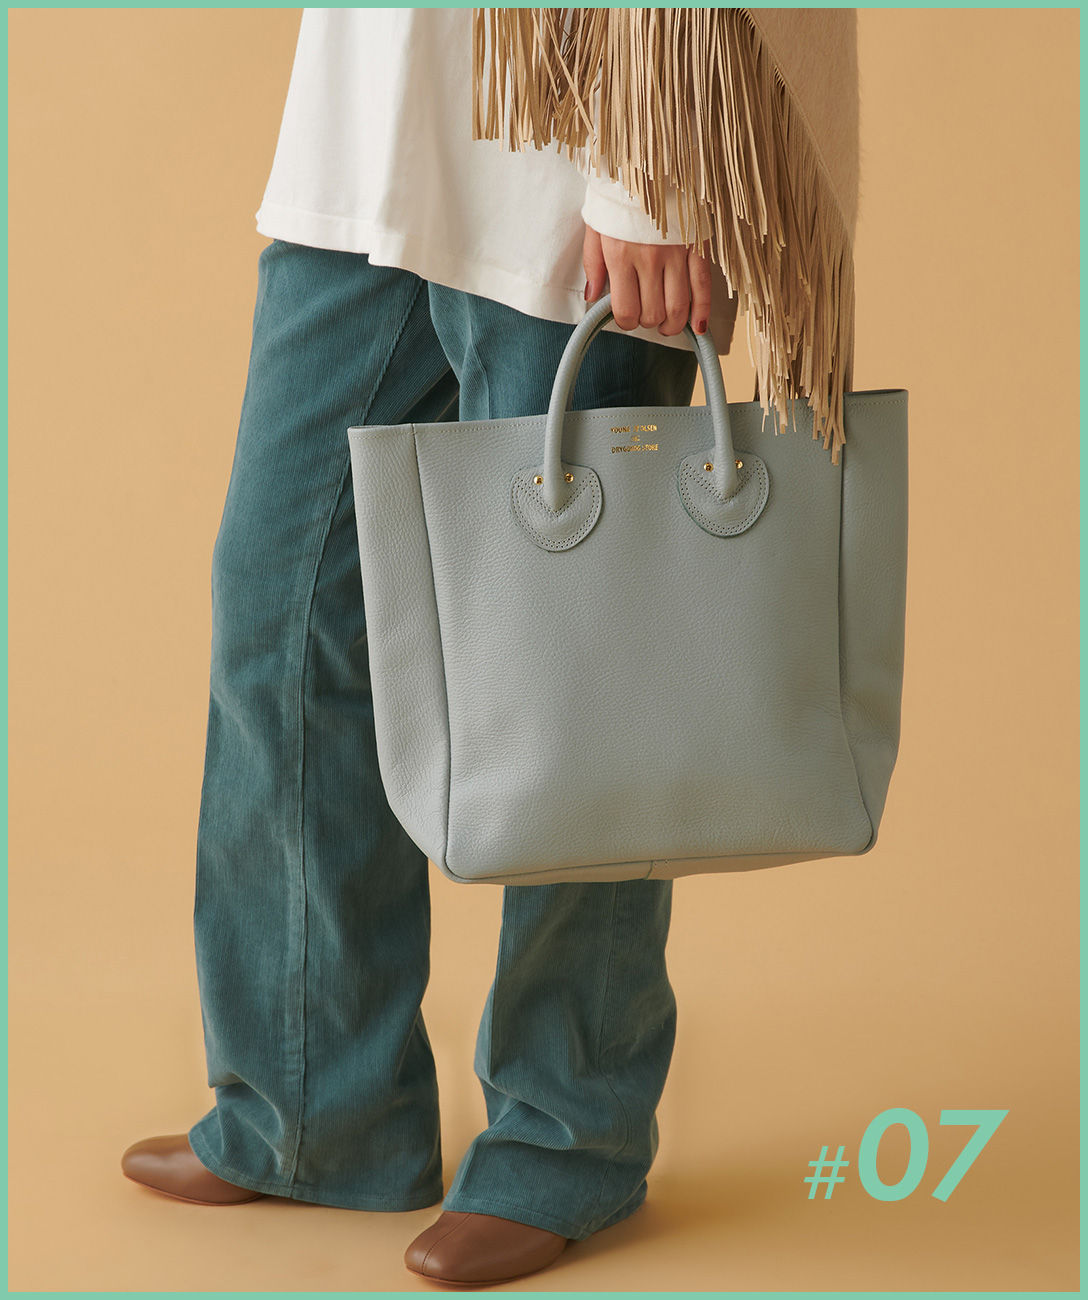 YOUNG & OLSEN The DRYGOODS STORE レザートートバッグ M